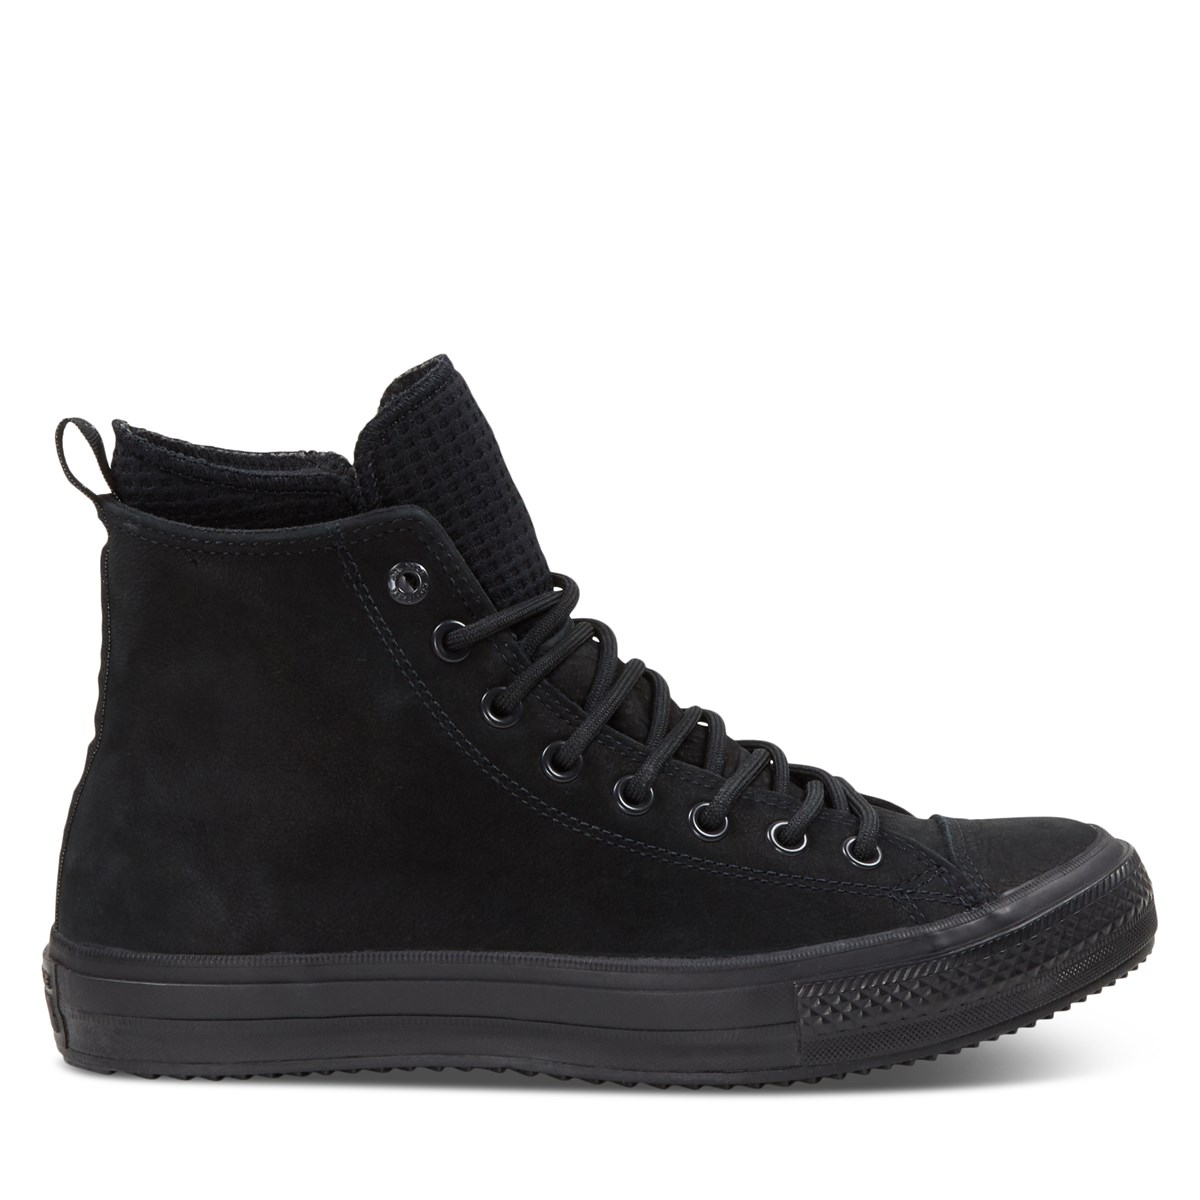 Men's Chuck Taylor All Star Waterproof Boots in Black